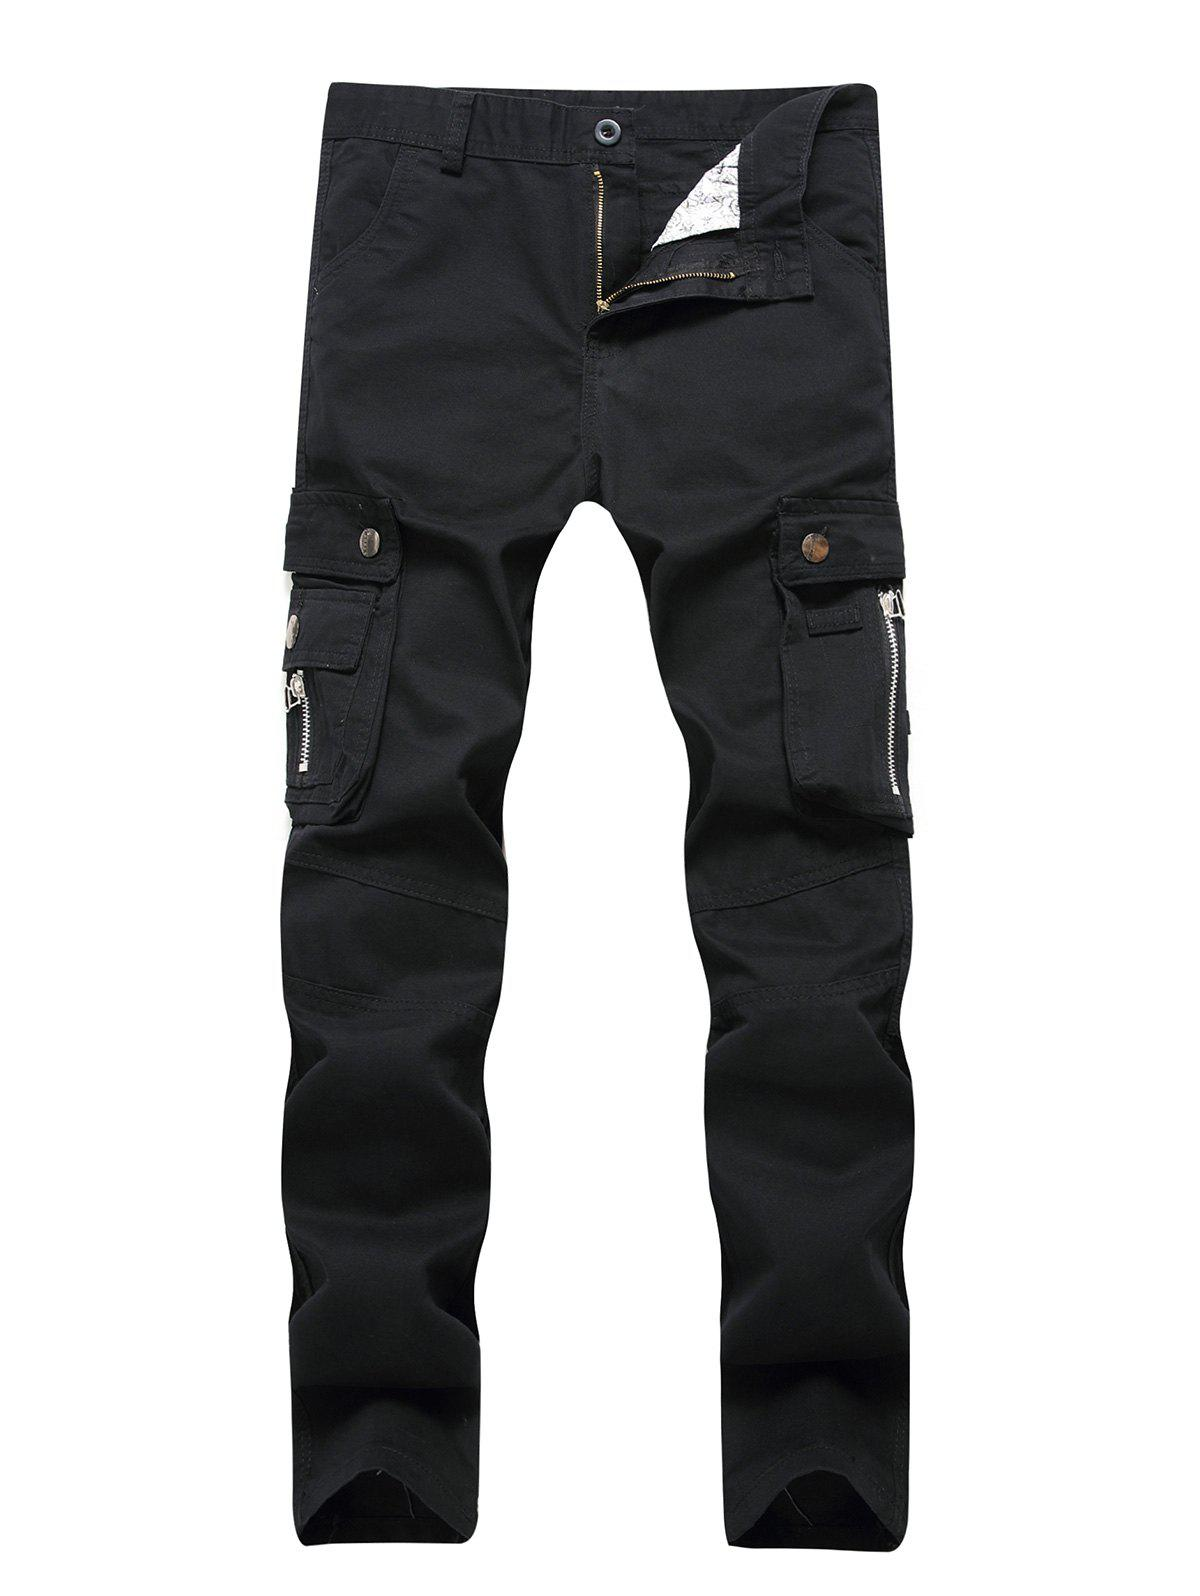 Shops Straight Leg Cargo Pants with Pockets